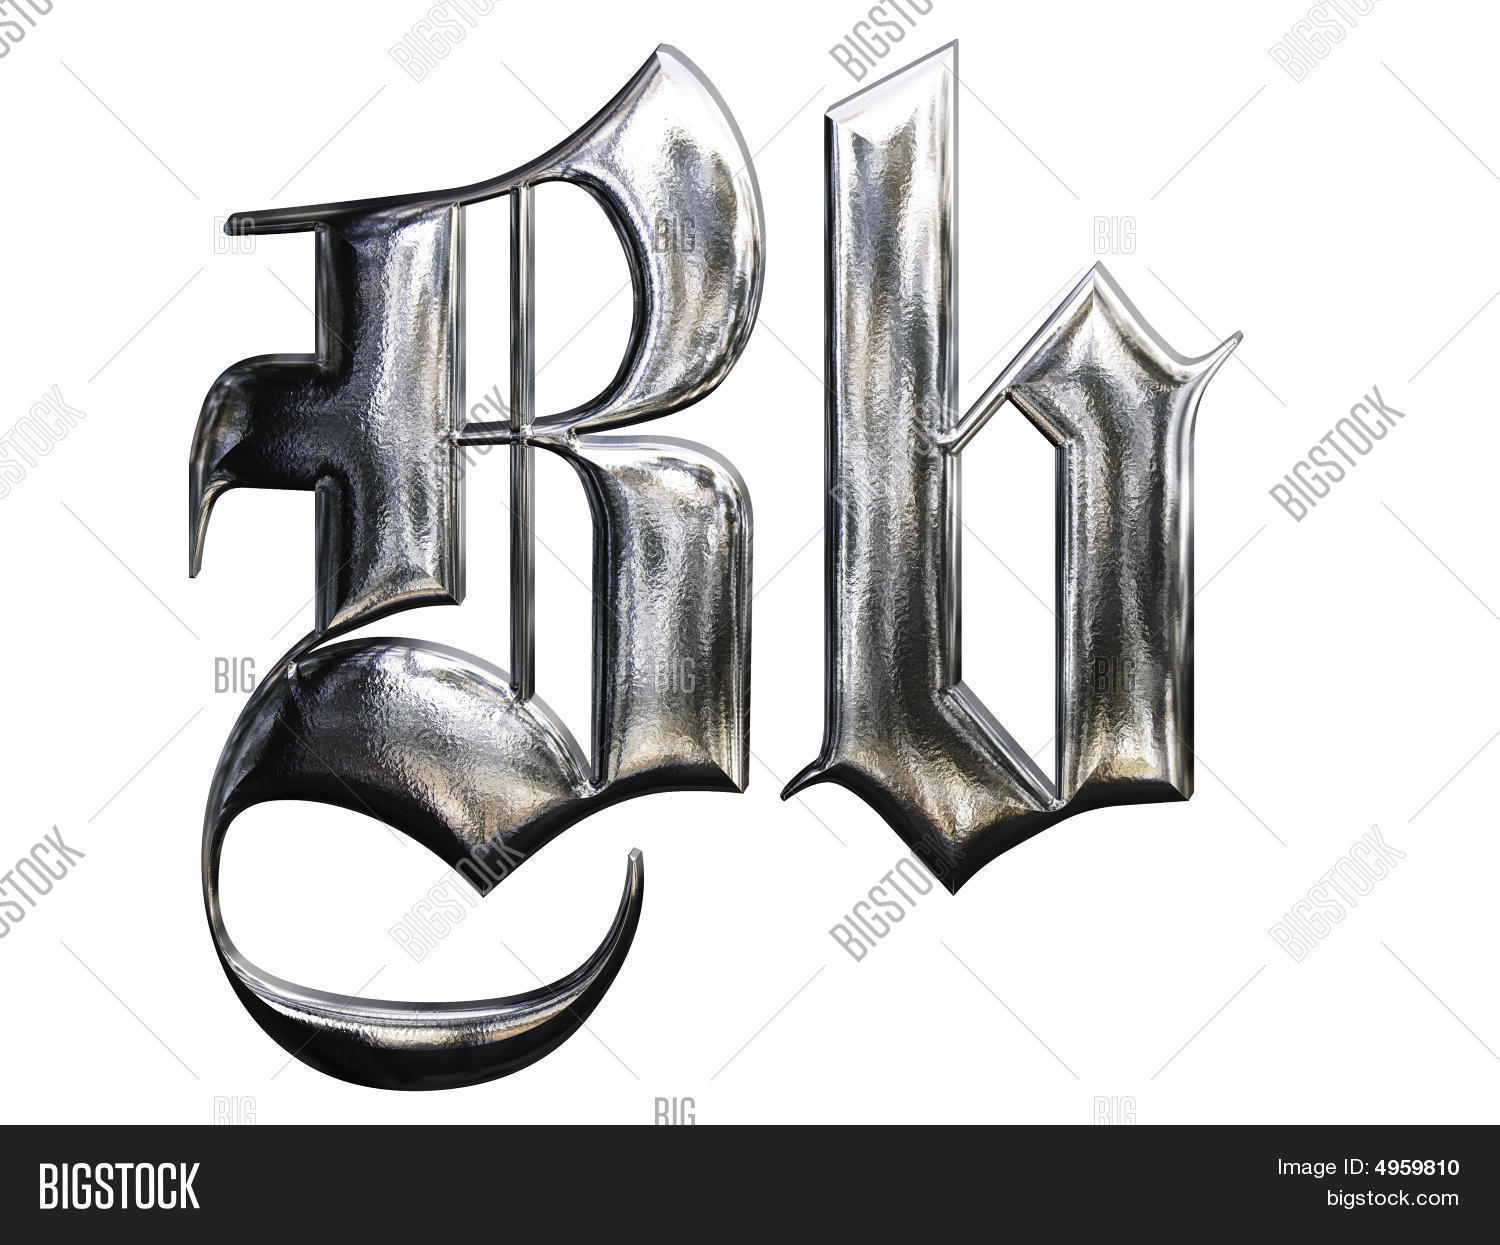 Metallic Patterned Letter Of German Gothic Alphabet Font B